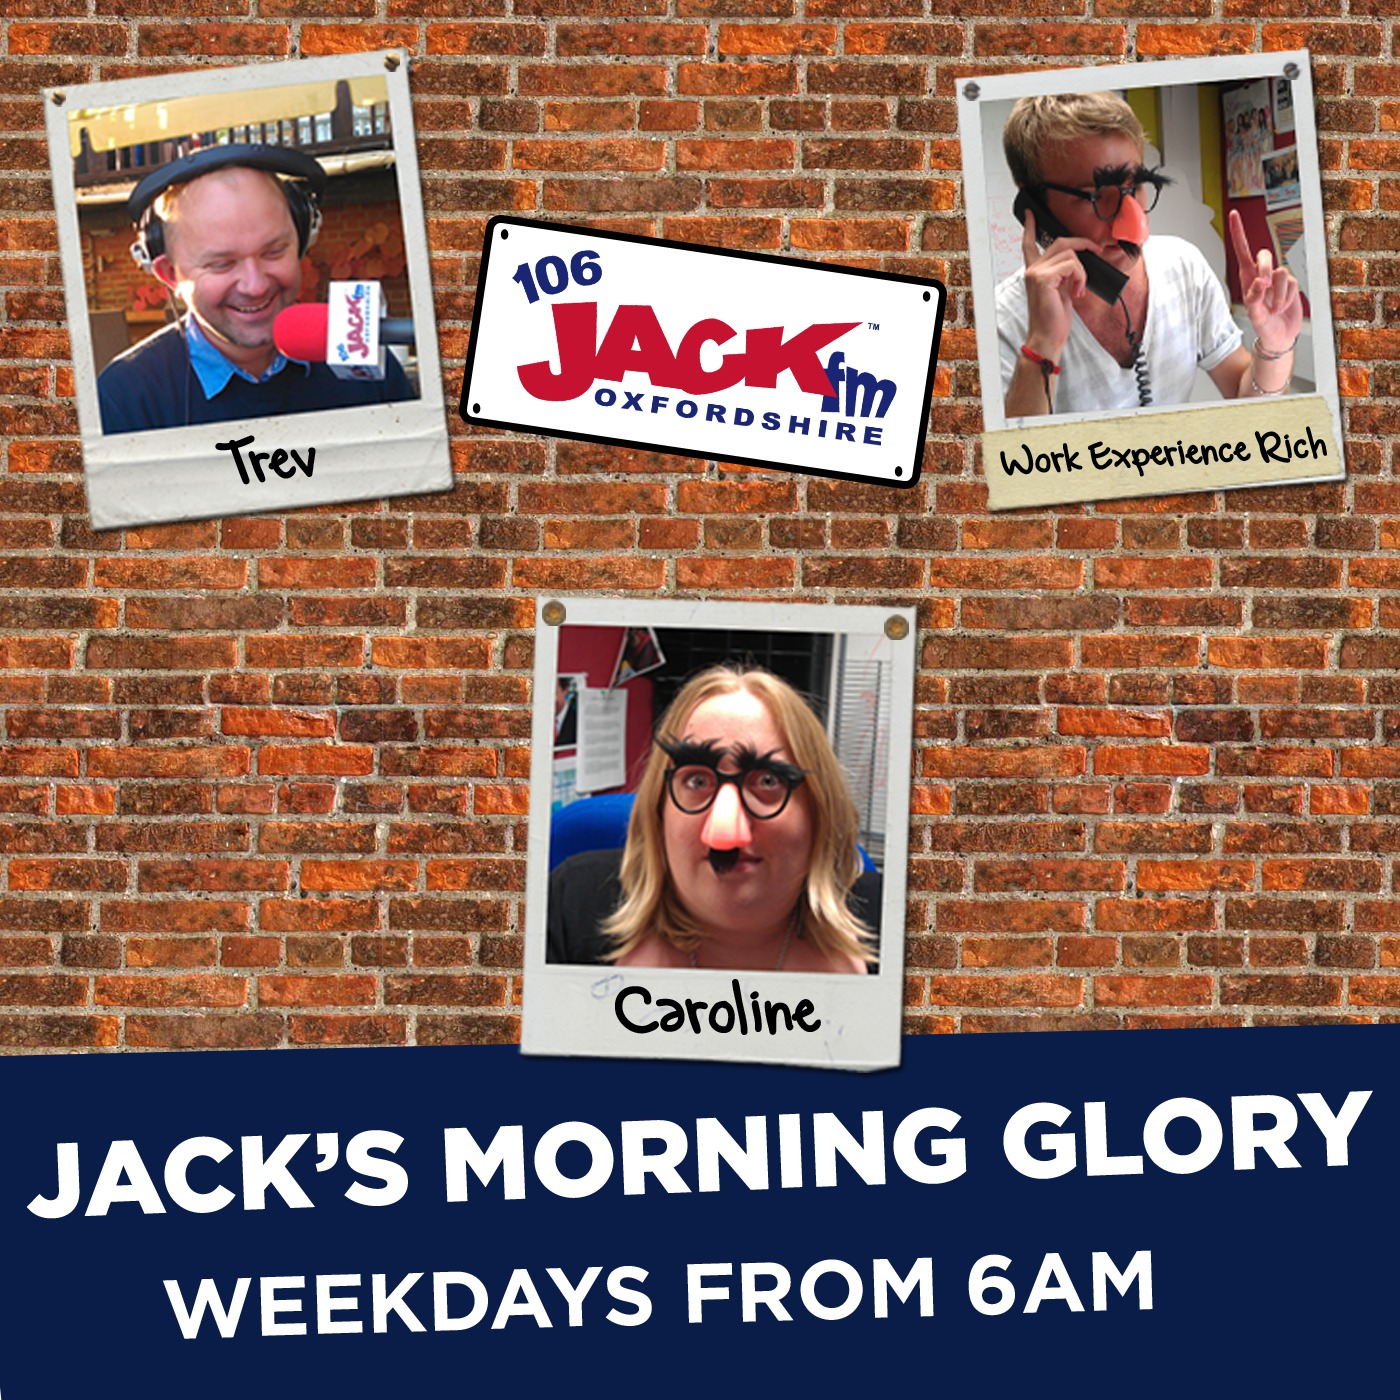 JACK's Morning Glory